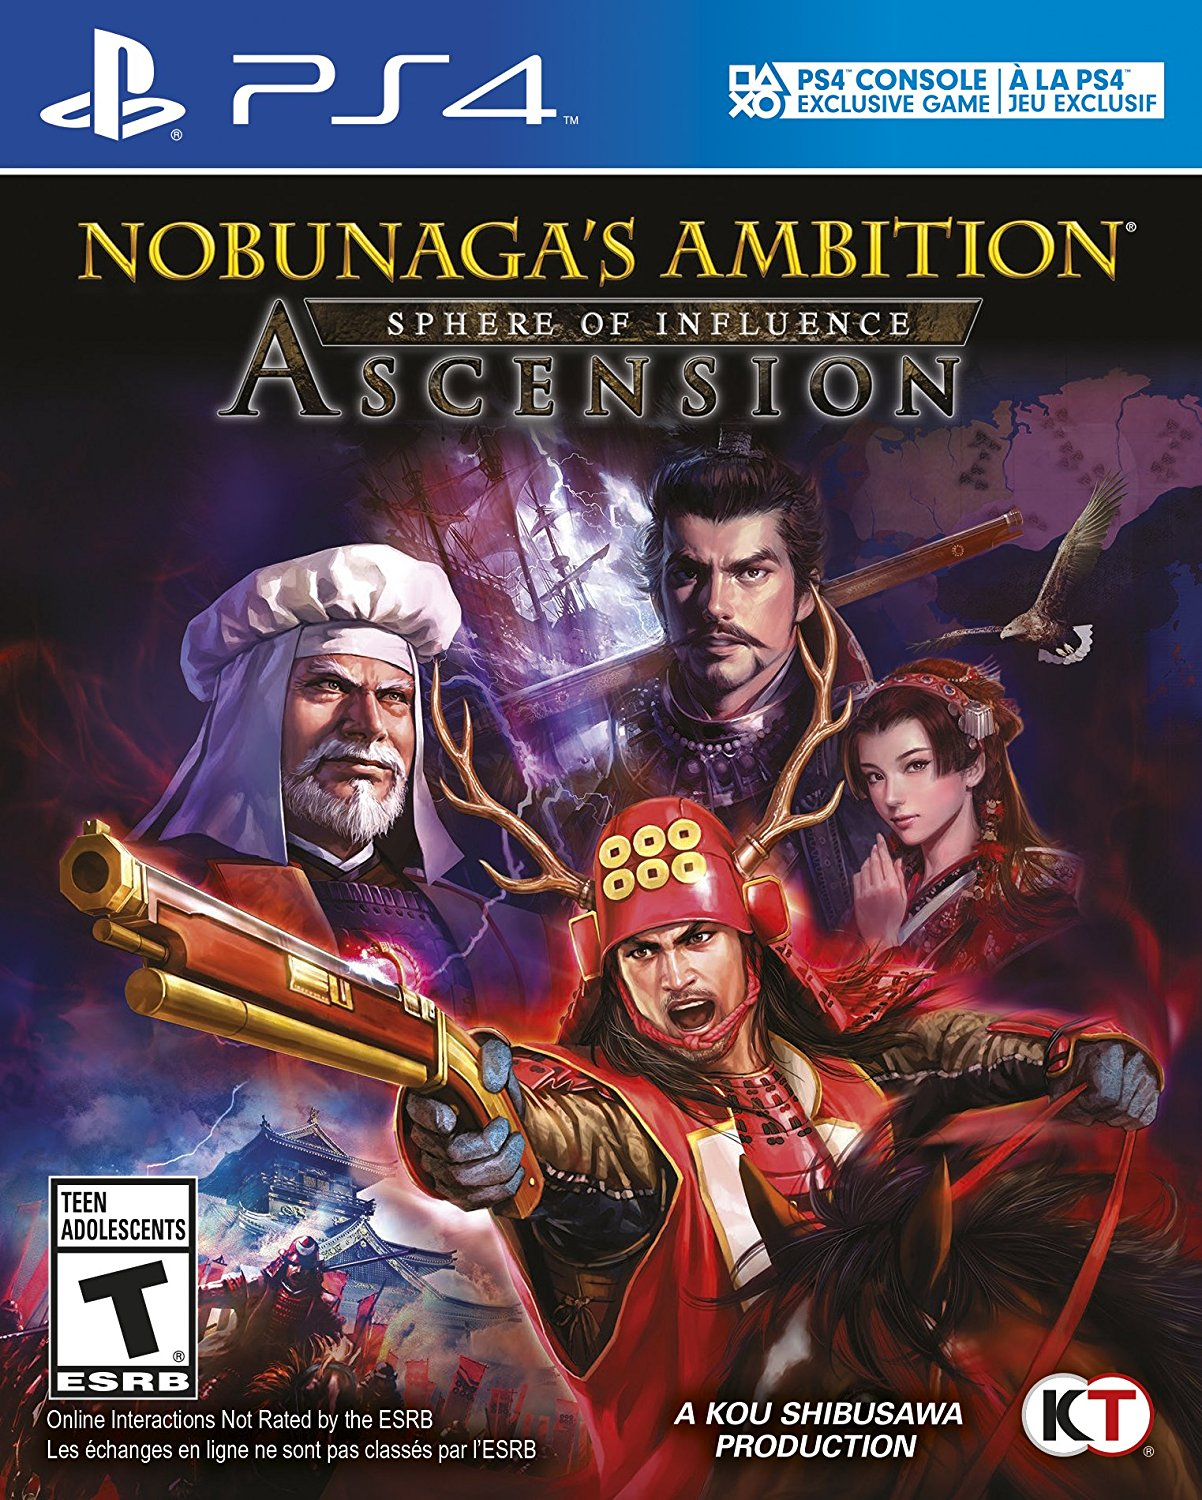 nobunagas-ambition-sphere-of-influence-ascension-box-art